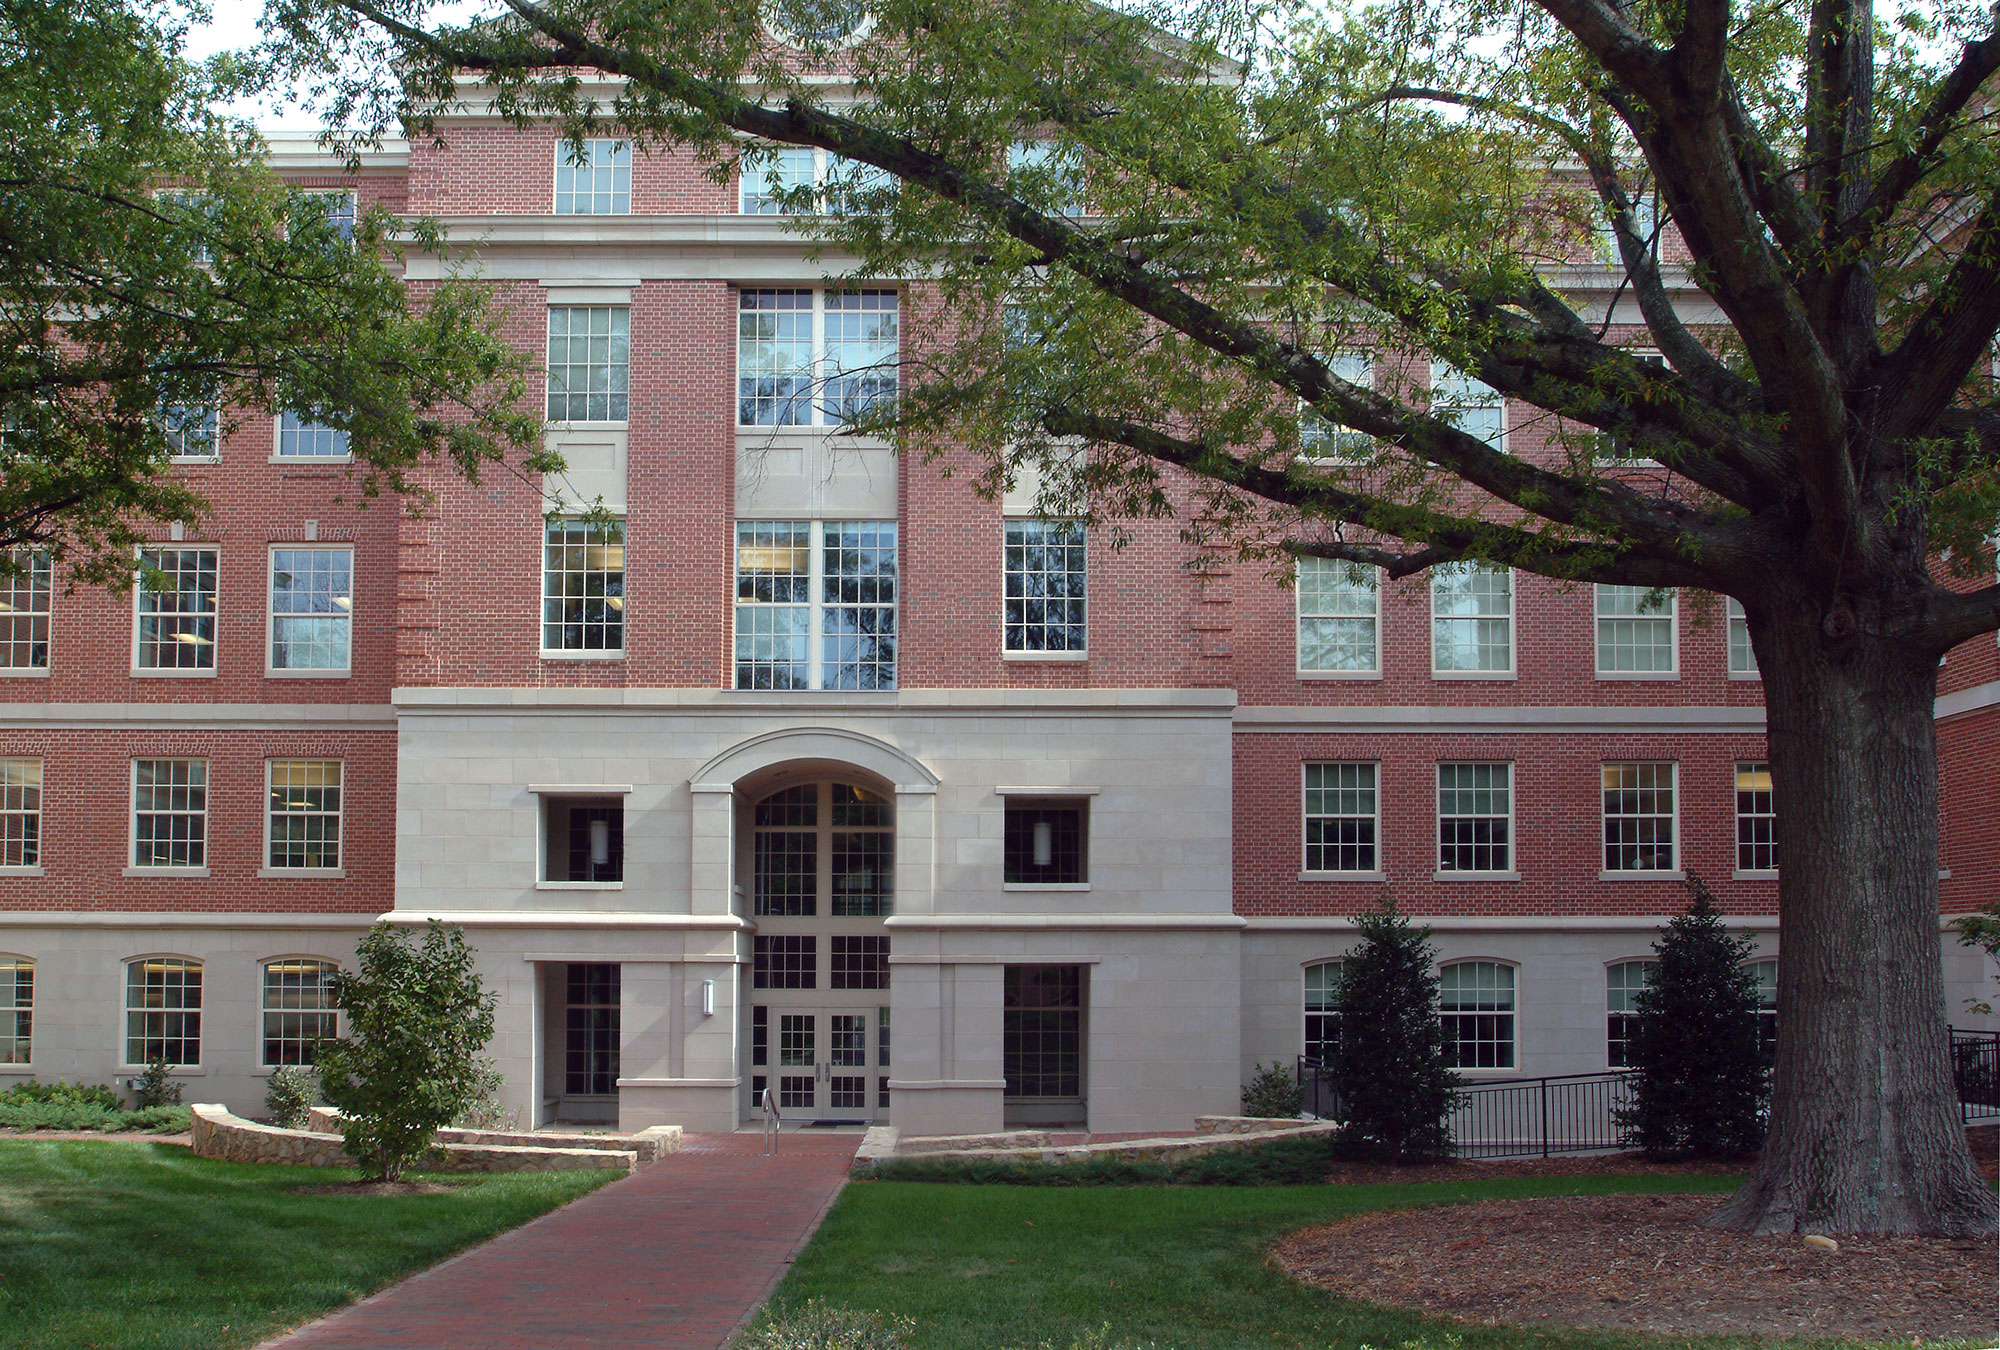 Outside photo of the School of Medicine